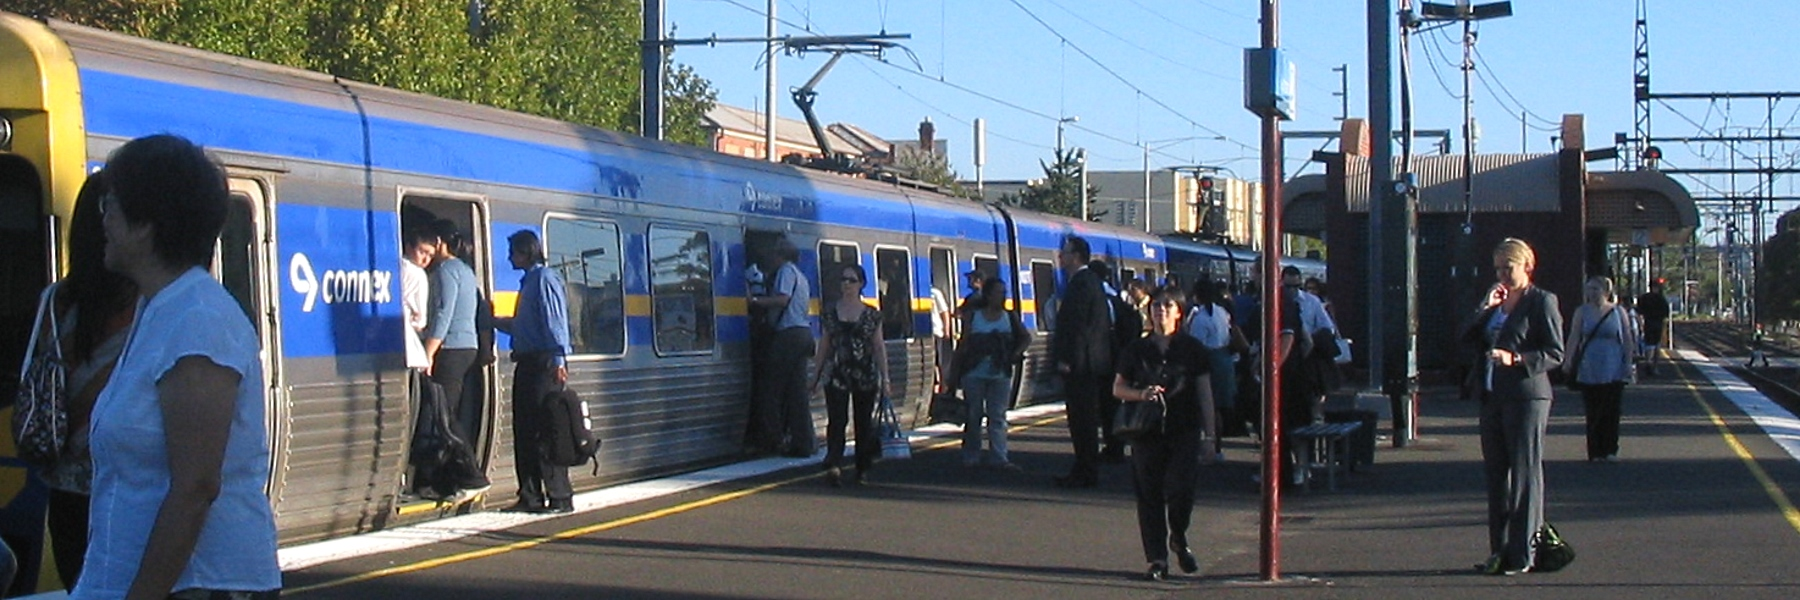 Crowded train at Glenhuntly, 2007